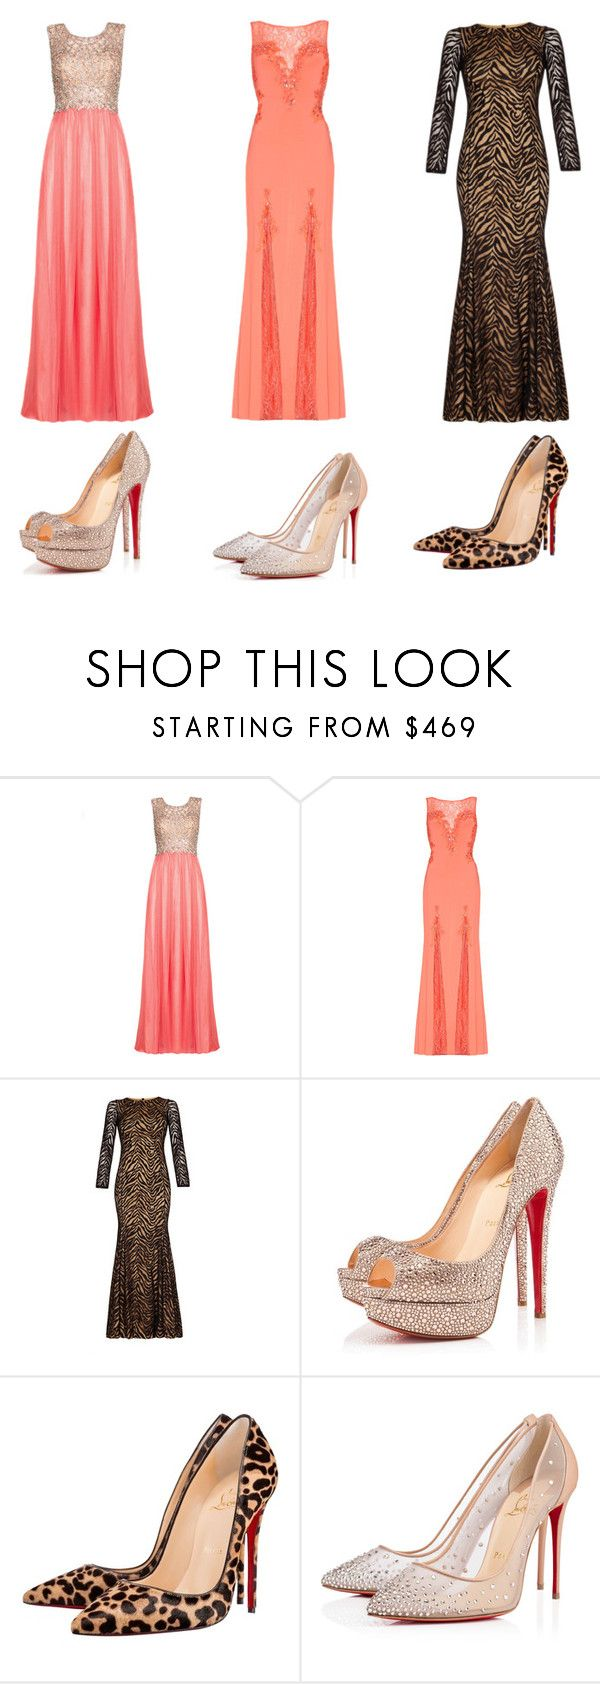 """Prom 2016 #8"" by luvtae ❤ liked on Polyvore featuring Christian Louboutin"